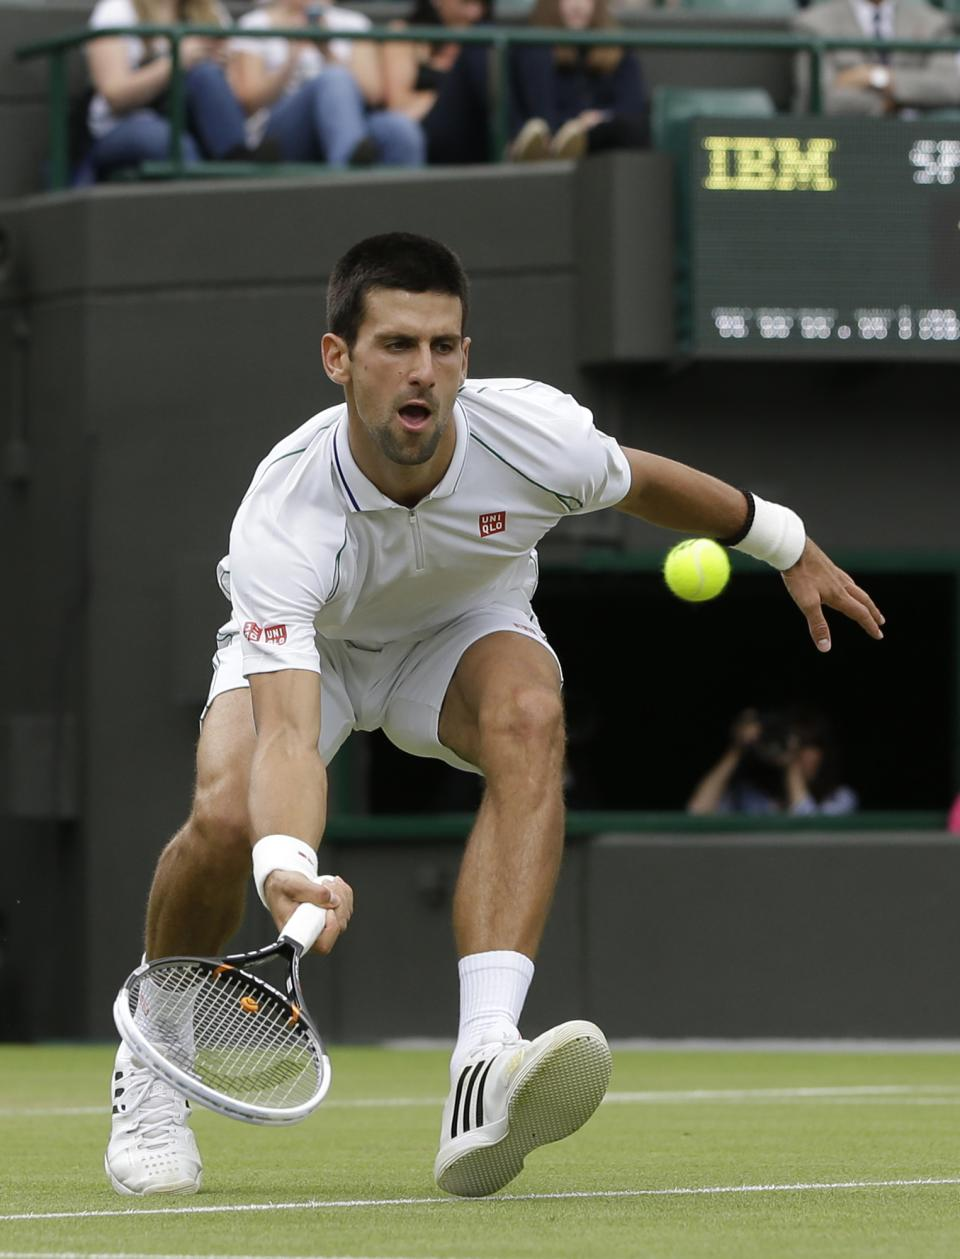 Novak Djokovic of Serbia plays a return to Florian Mayer of Germany during a quarterfinals match at the All England Lawn Tennis Championships at Wimbledon, England, Wednesday, July 4, 2012. (AP Photo/Kirsty Wigglesworth)